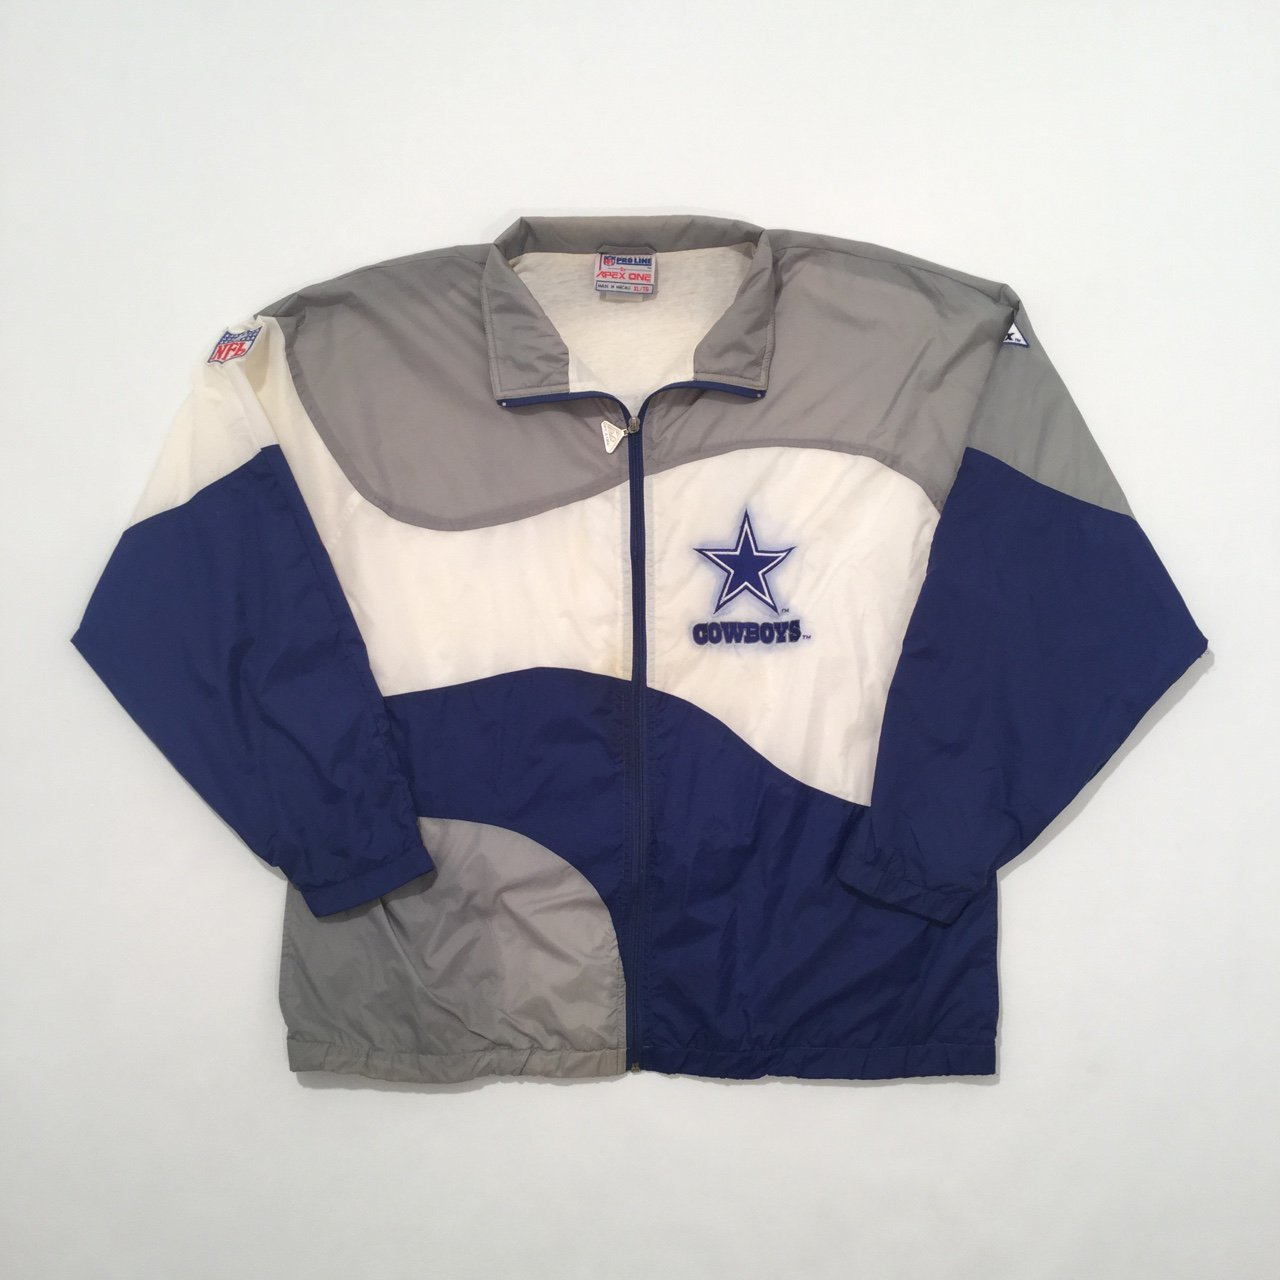 🏈 Vintage 90 s Apex One NFL Dallas Cowboys spellout jacket - Depop 1791e579f